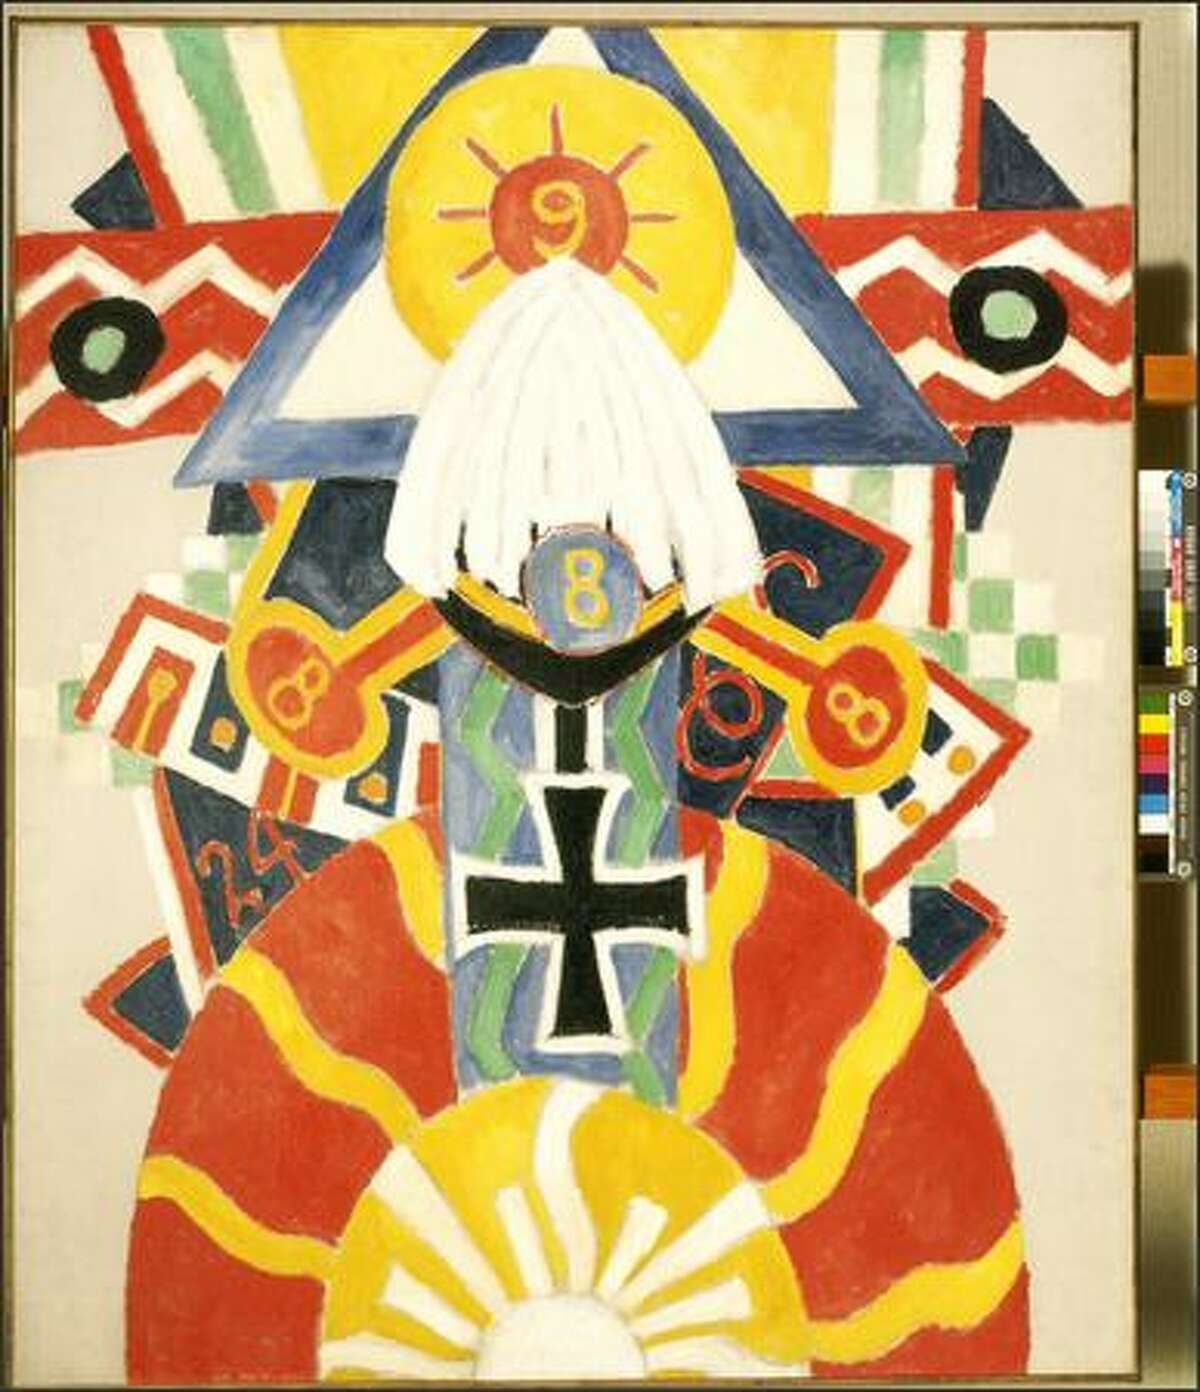 """""""Painting Number 49, Berlin, Portrait of a German Officer"""", abstraction medium oil on canvas. Dimensions 47 x 39 1/2 in. (119.4 x 100.3 cm) 1914-1915. By Marsden Hartley. (From the Barney A. Ebsworth Collection)"""